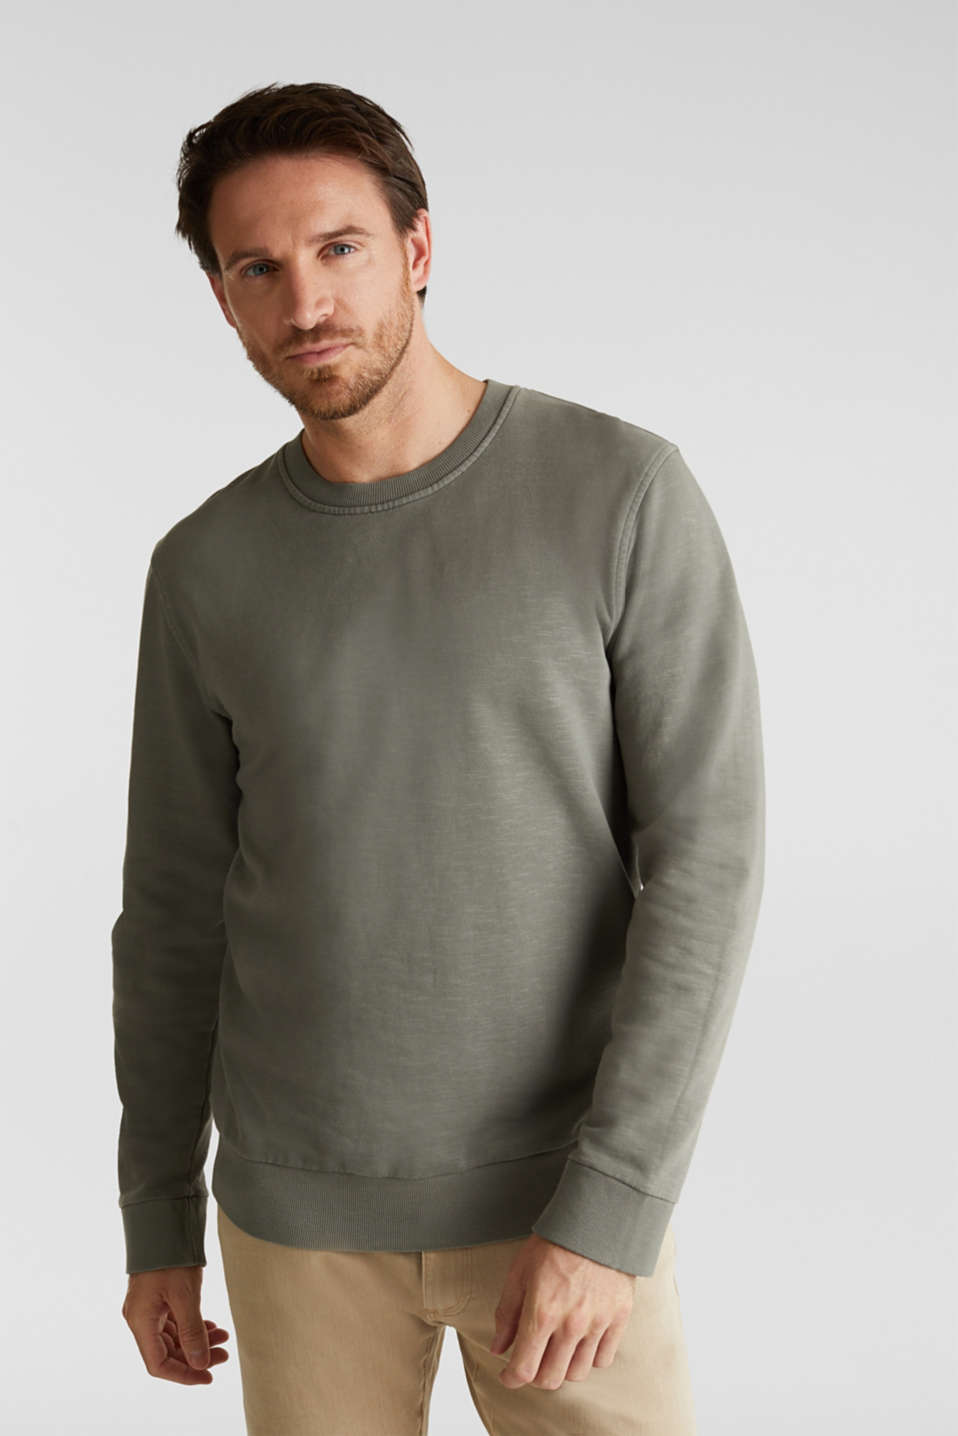 Esprit - EarthColors®: cotton sweatshirt